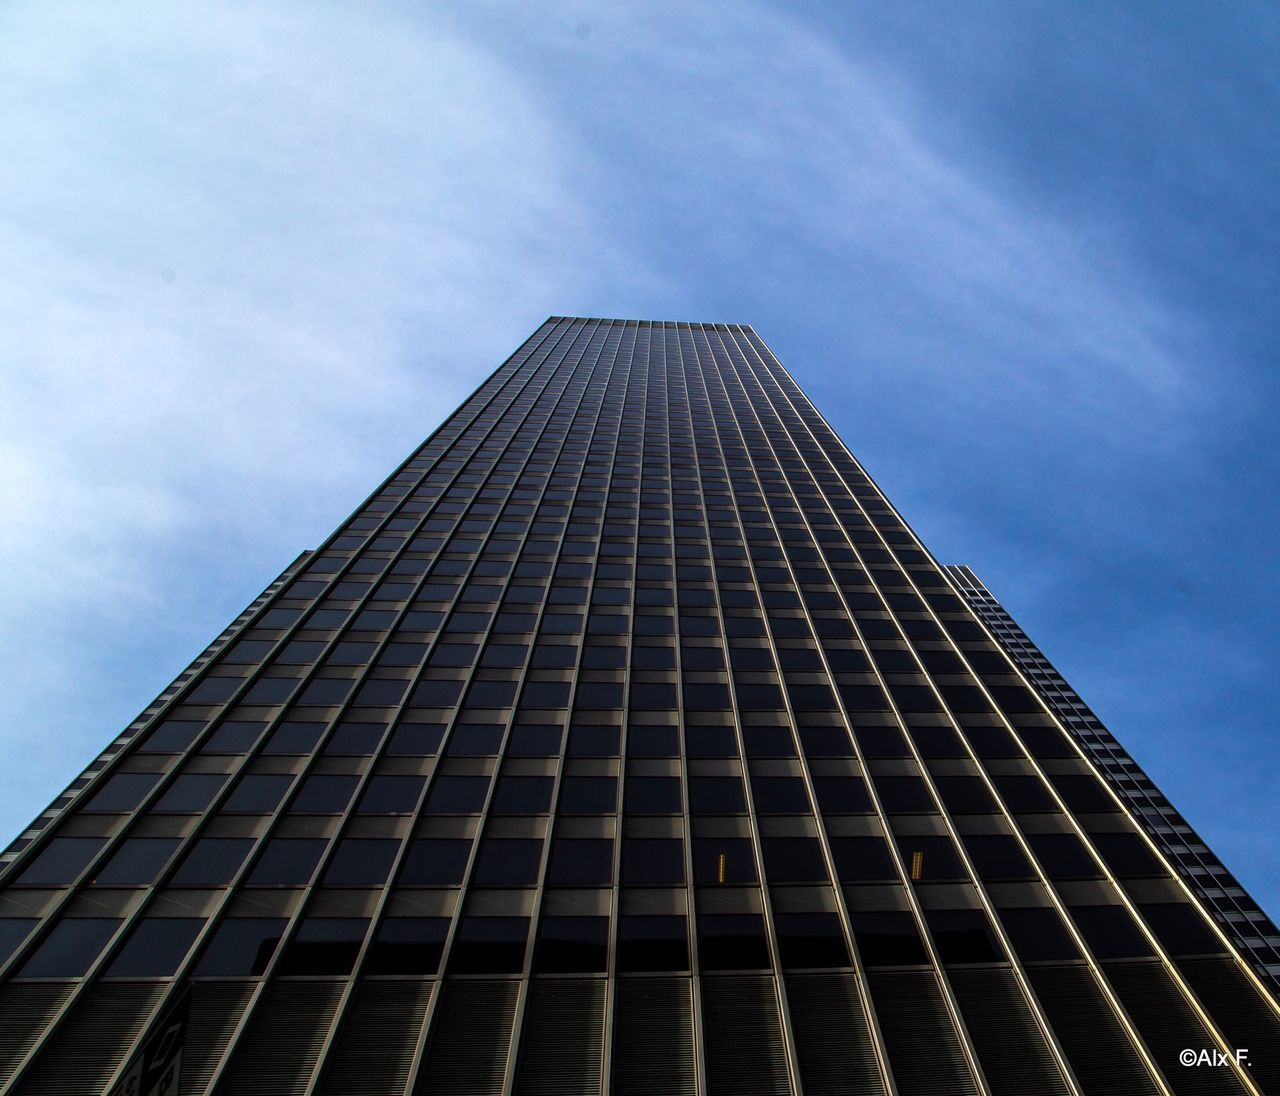 low angle view, architecture, modern, built structure, skyscraper, building exterior, sky, tall, no people, day, city, outdoors